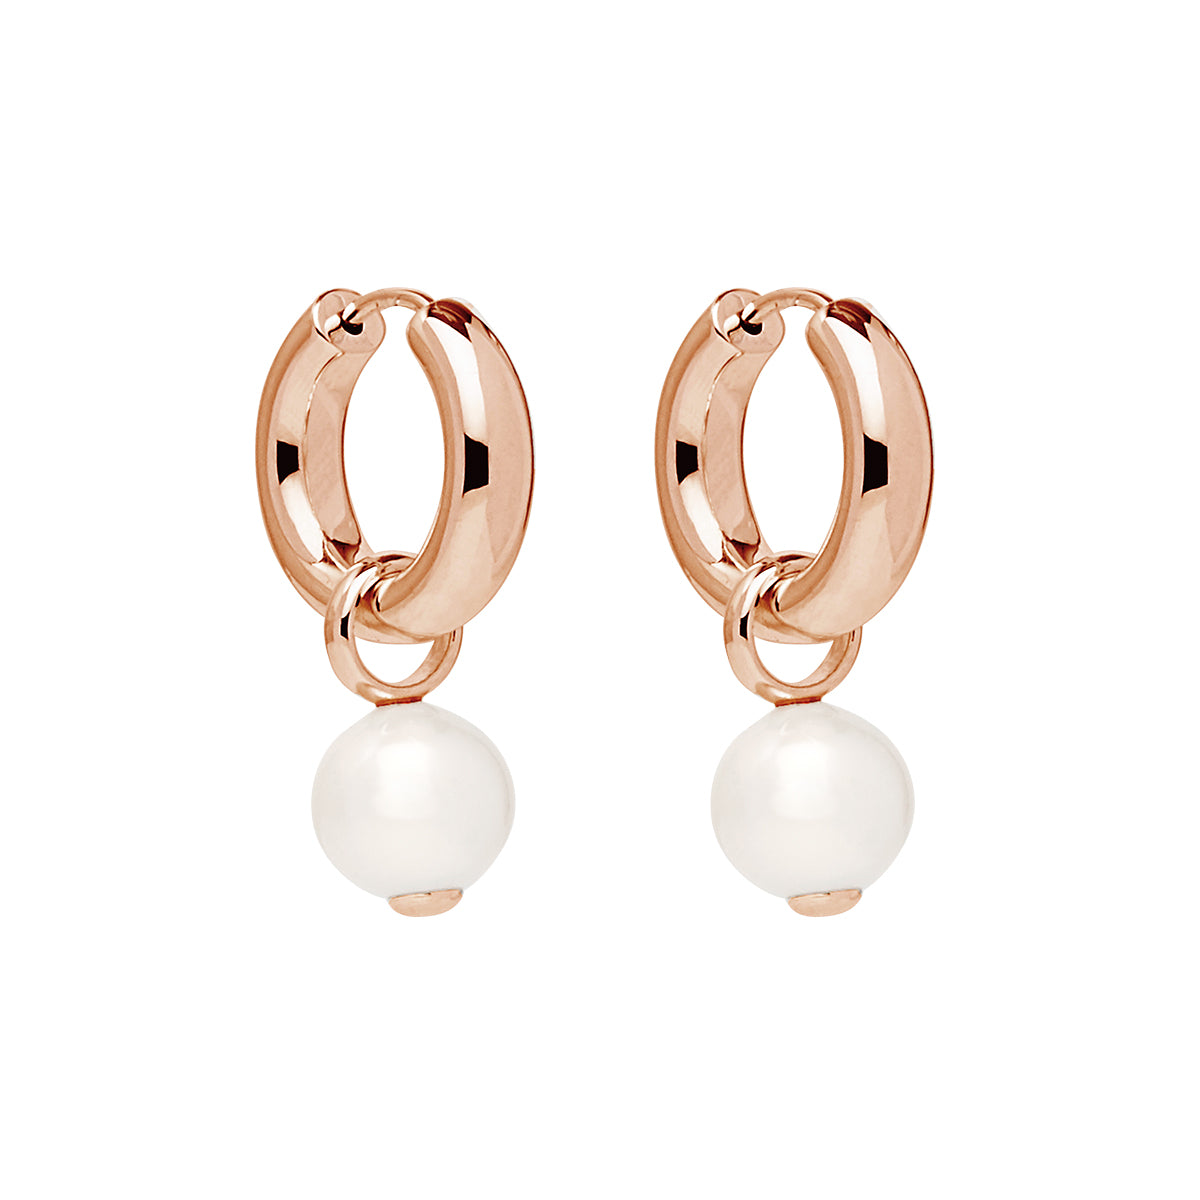 Ms Perla Earring Rose